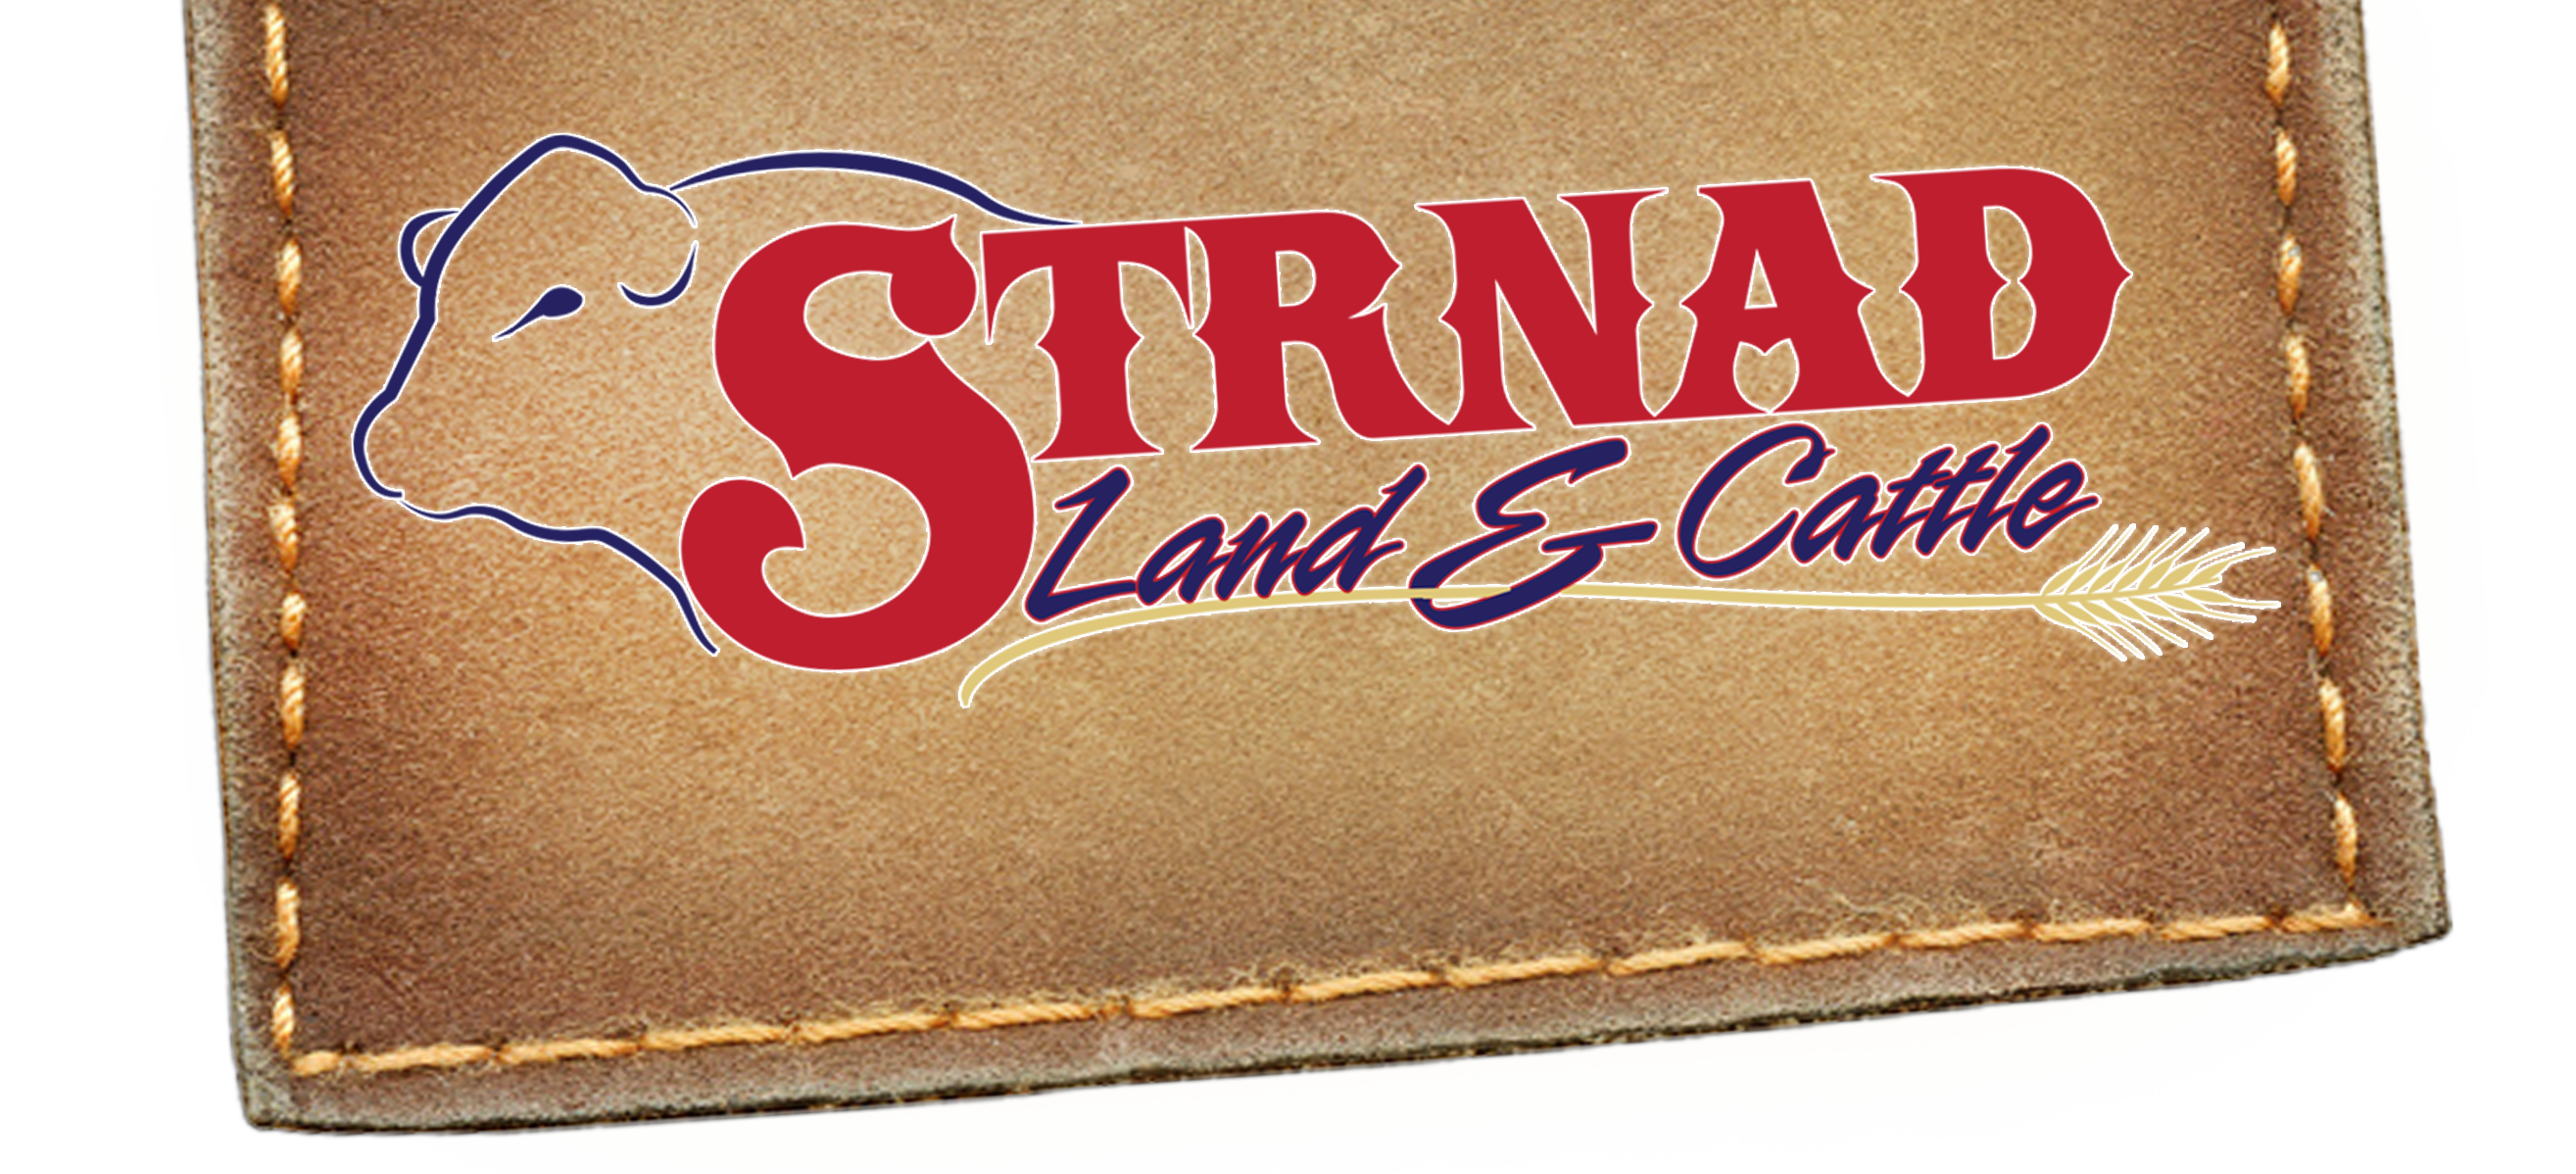 Strnad Land and Cattle